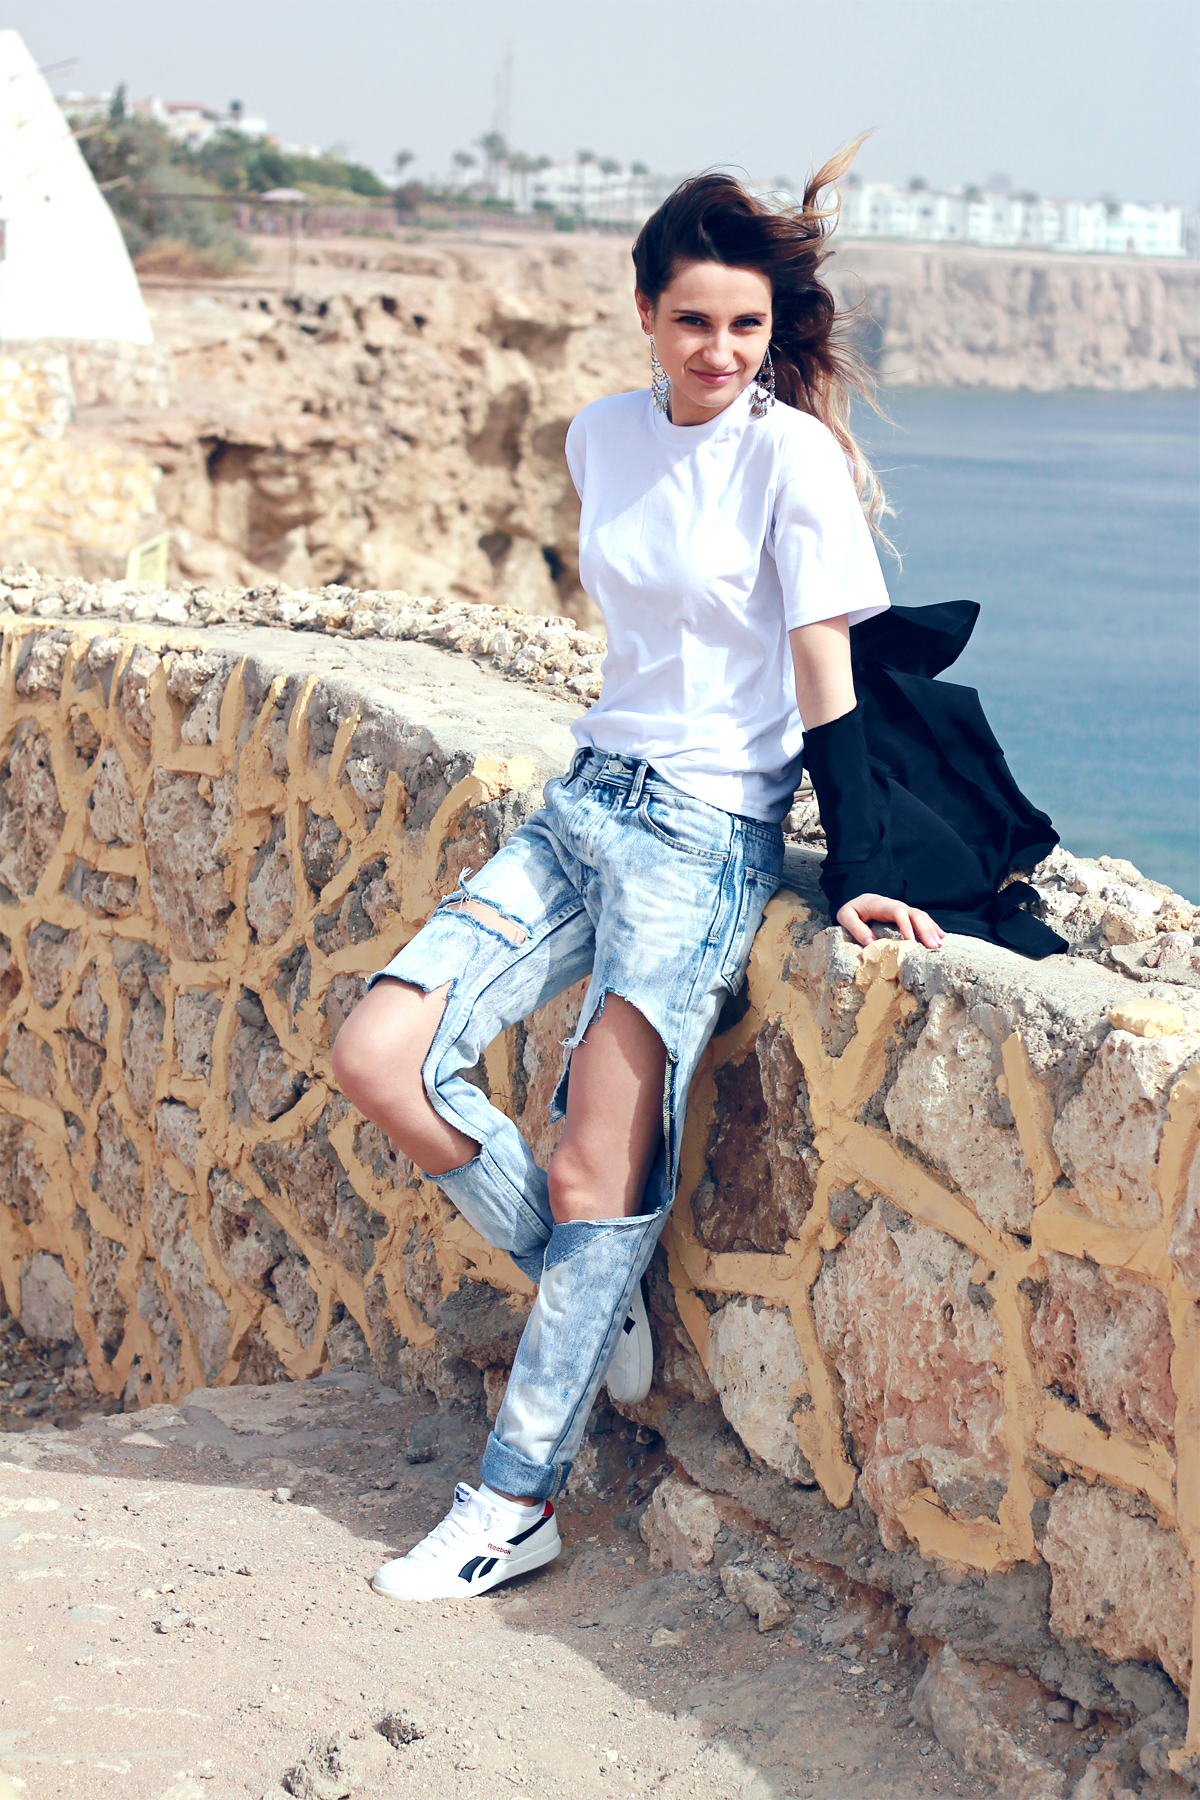 topshop ripped boyfriend jeans dkny black shirt reebok sneakers fashion blogger girl polishgirl blonde denim pants curly hair casual minimal look white tee edgy clothes outfit what to wear vogue 1200 7